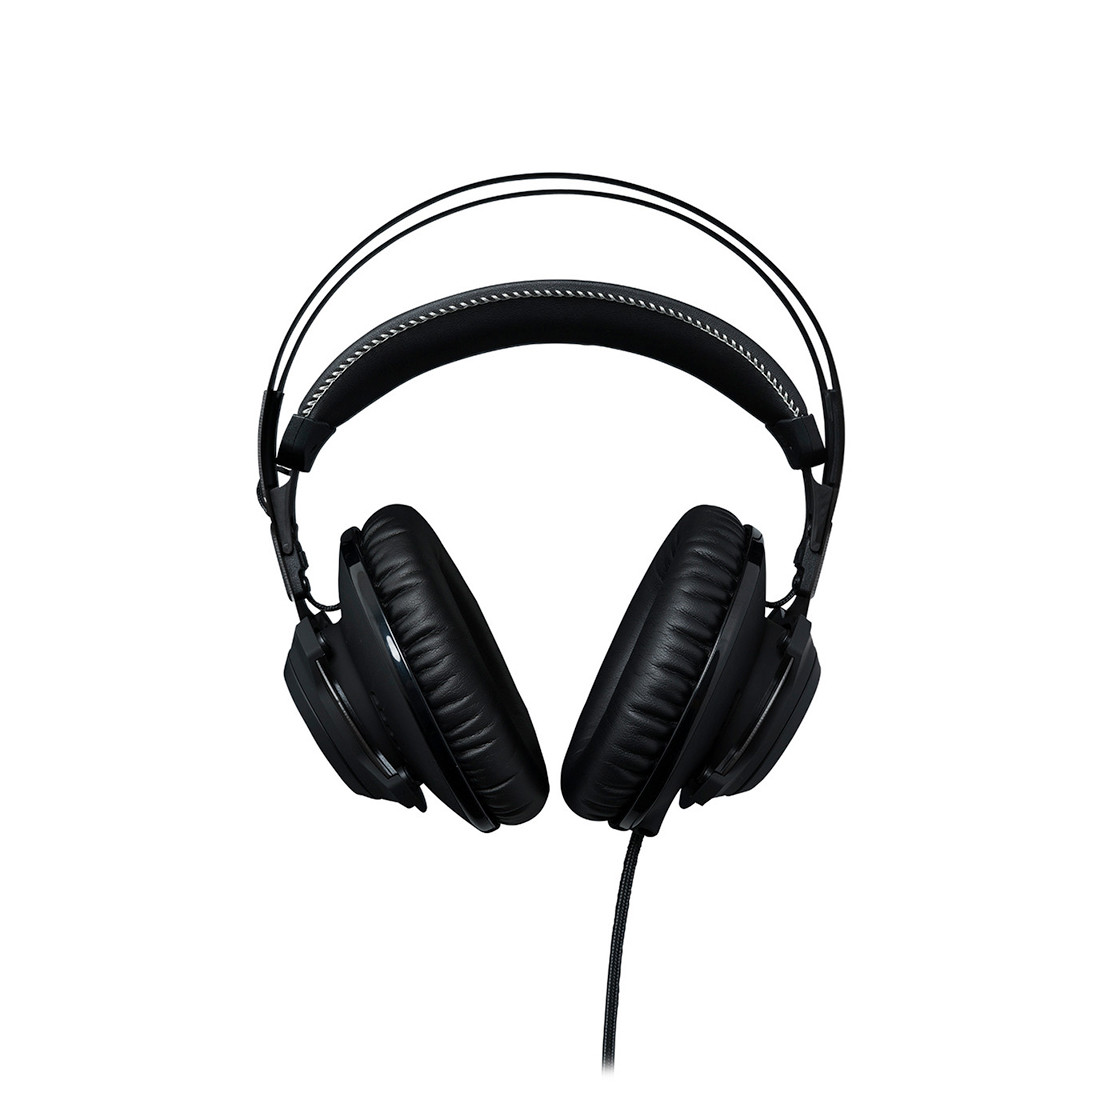 Наушники HyperX Cloud Revolver (Gun Metal) - HX-HSCR-GM